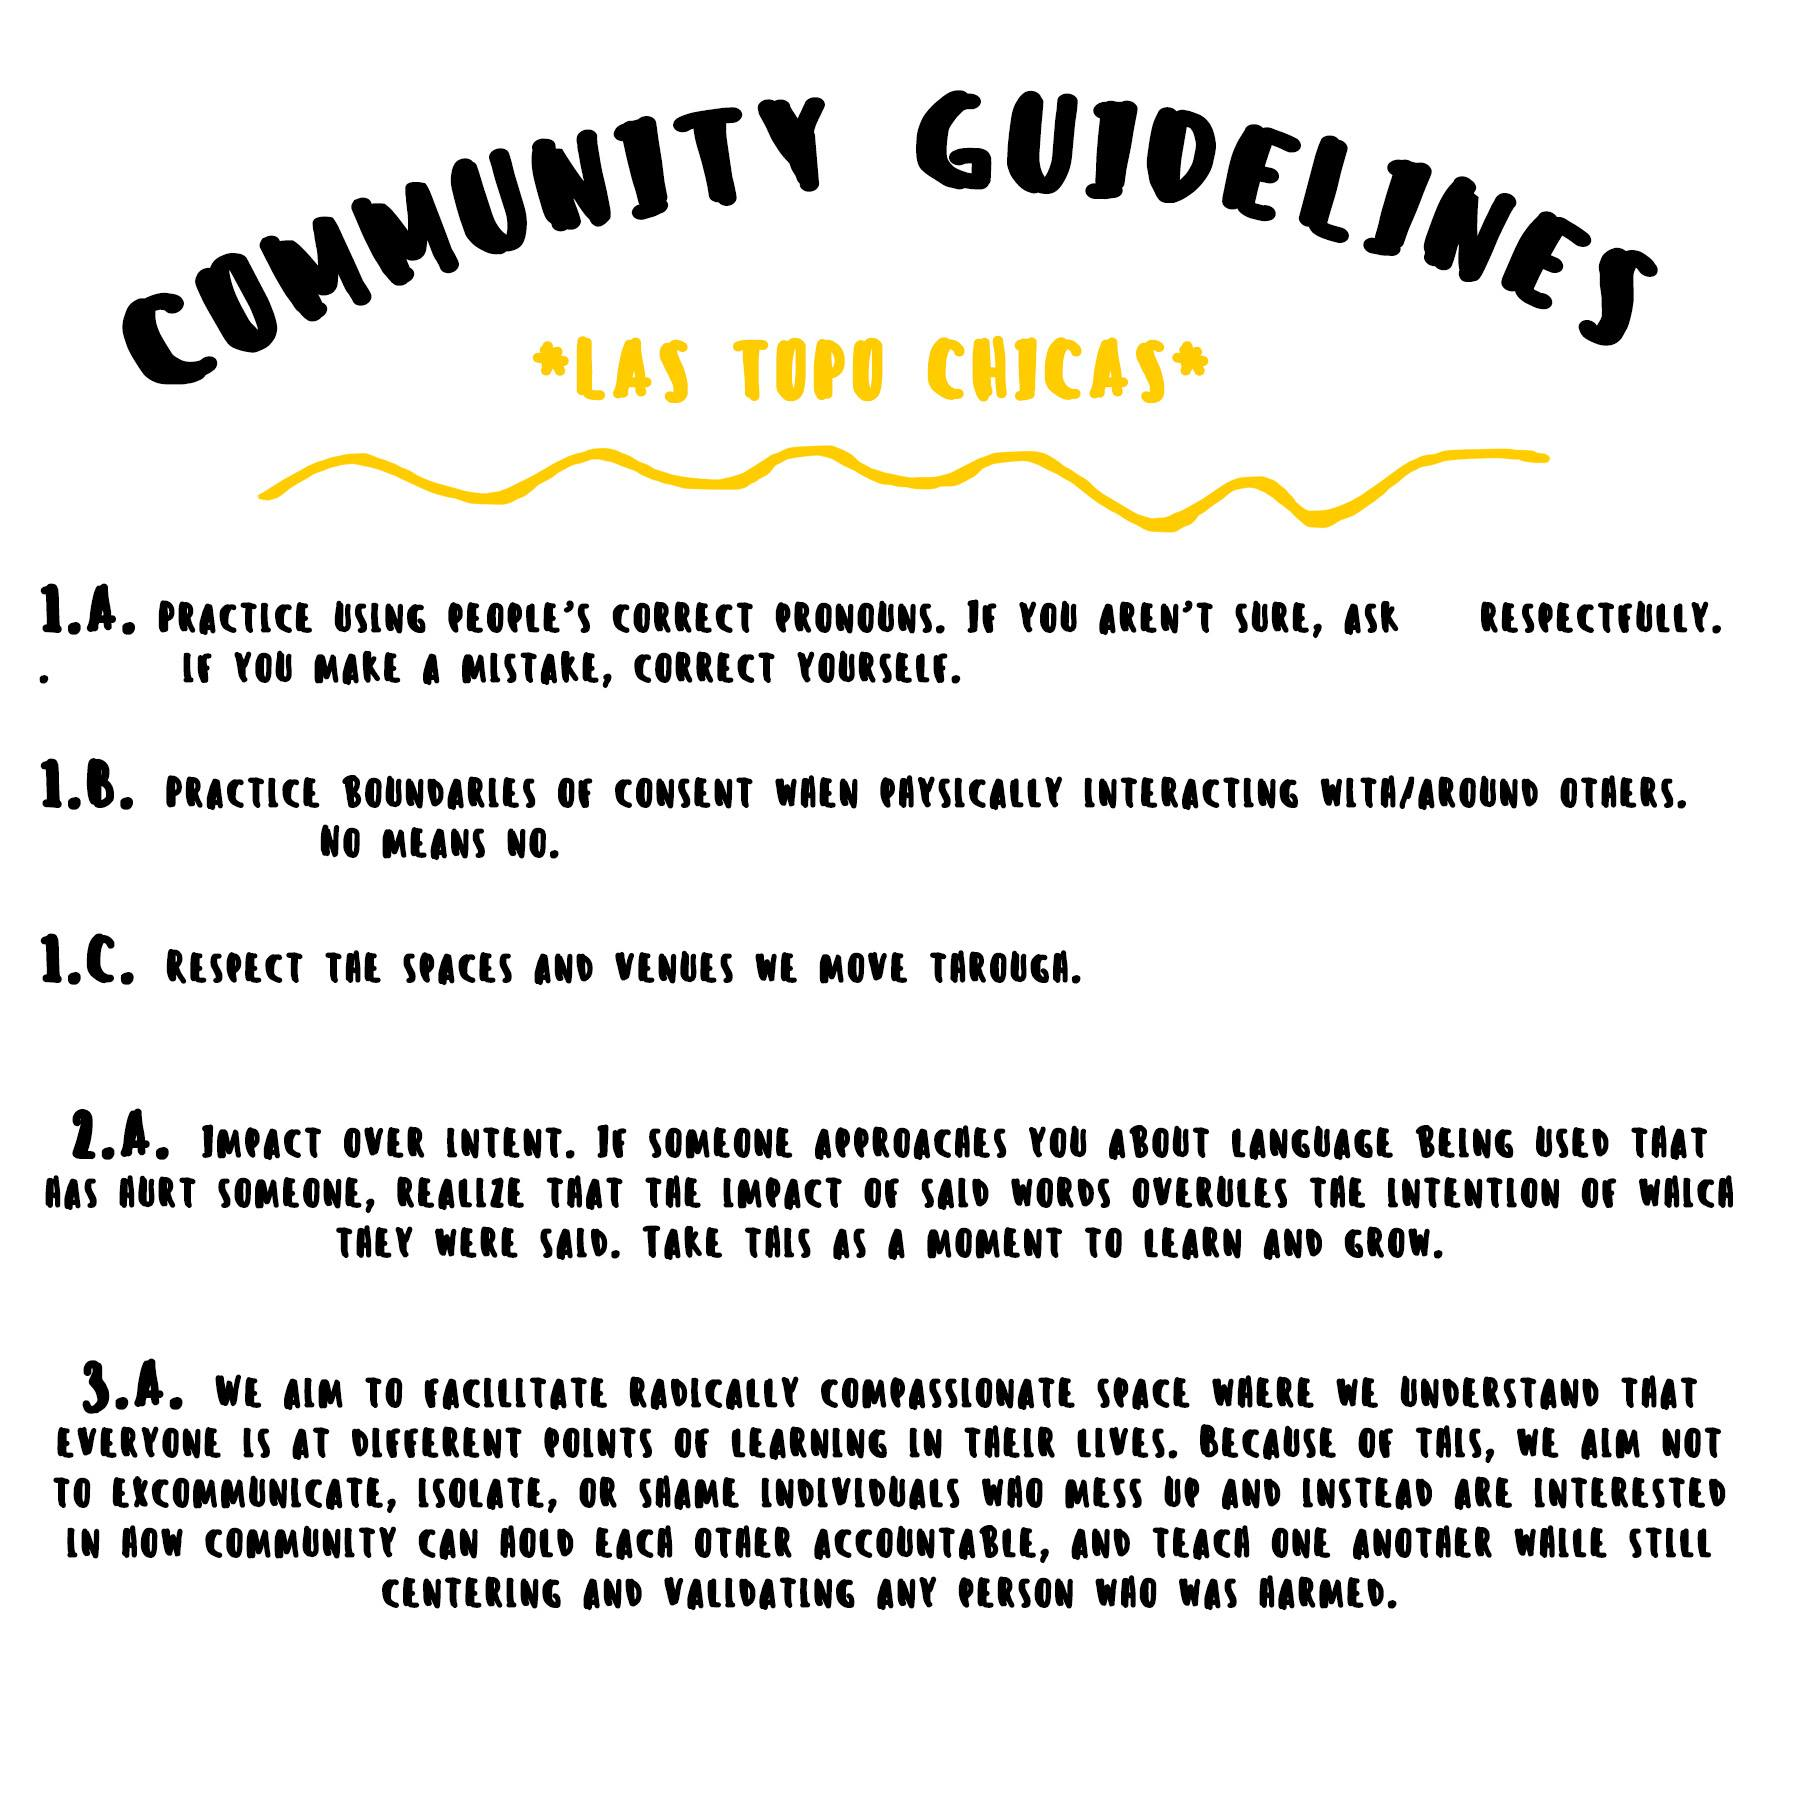 LTC_community_guidelines_expanded.jpg